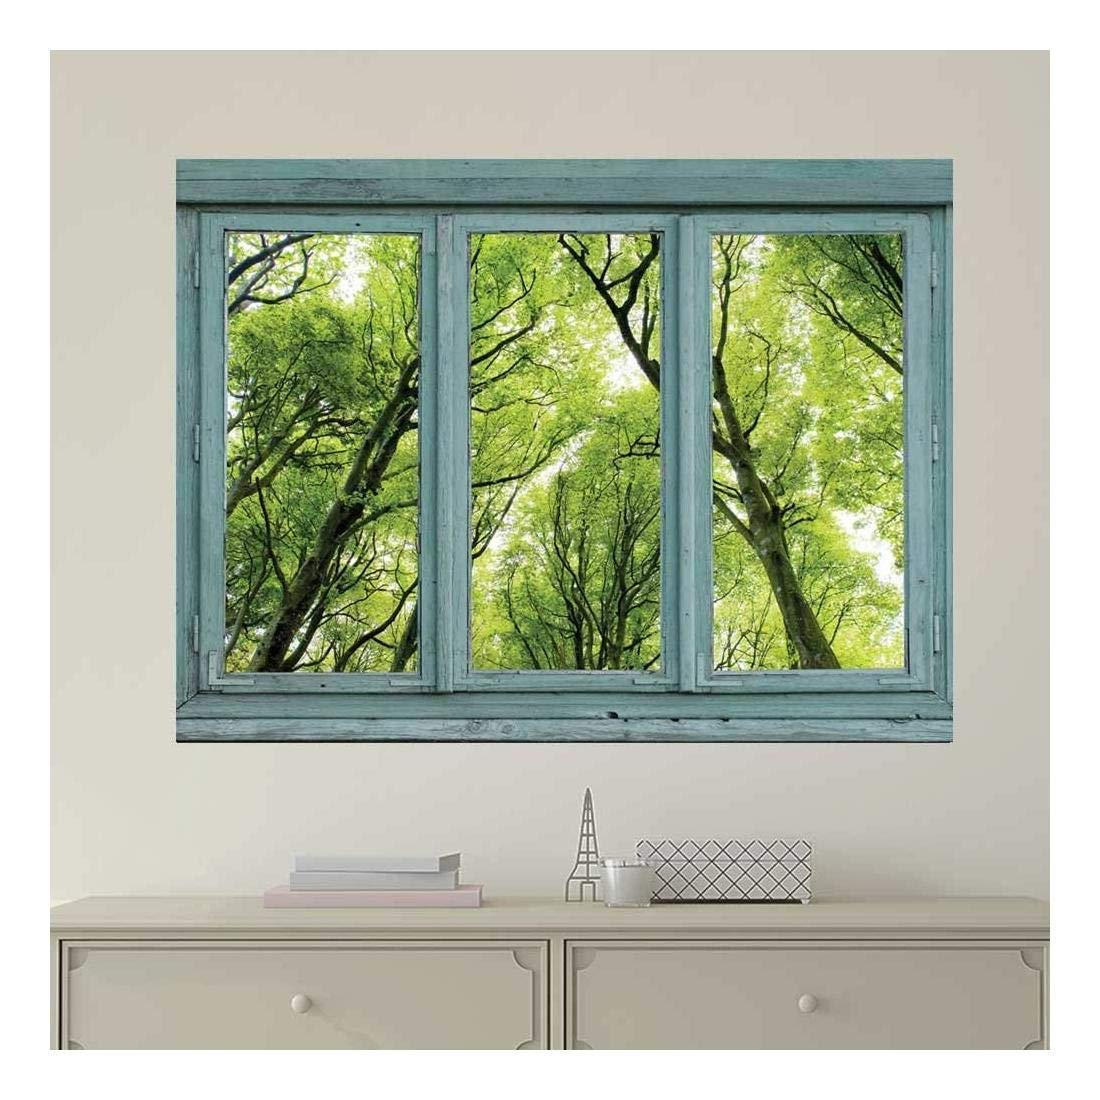 wall26 Vintage Teal Window Looking Out Into a Green Forest - Wall Mural, Removable Sticker, Home Decor - 36x48 inches